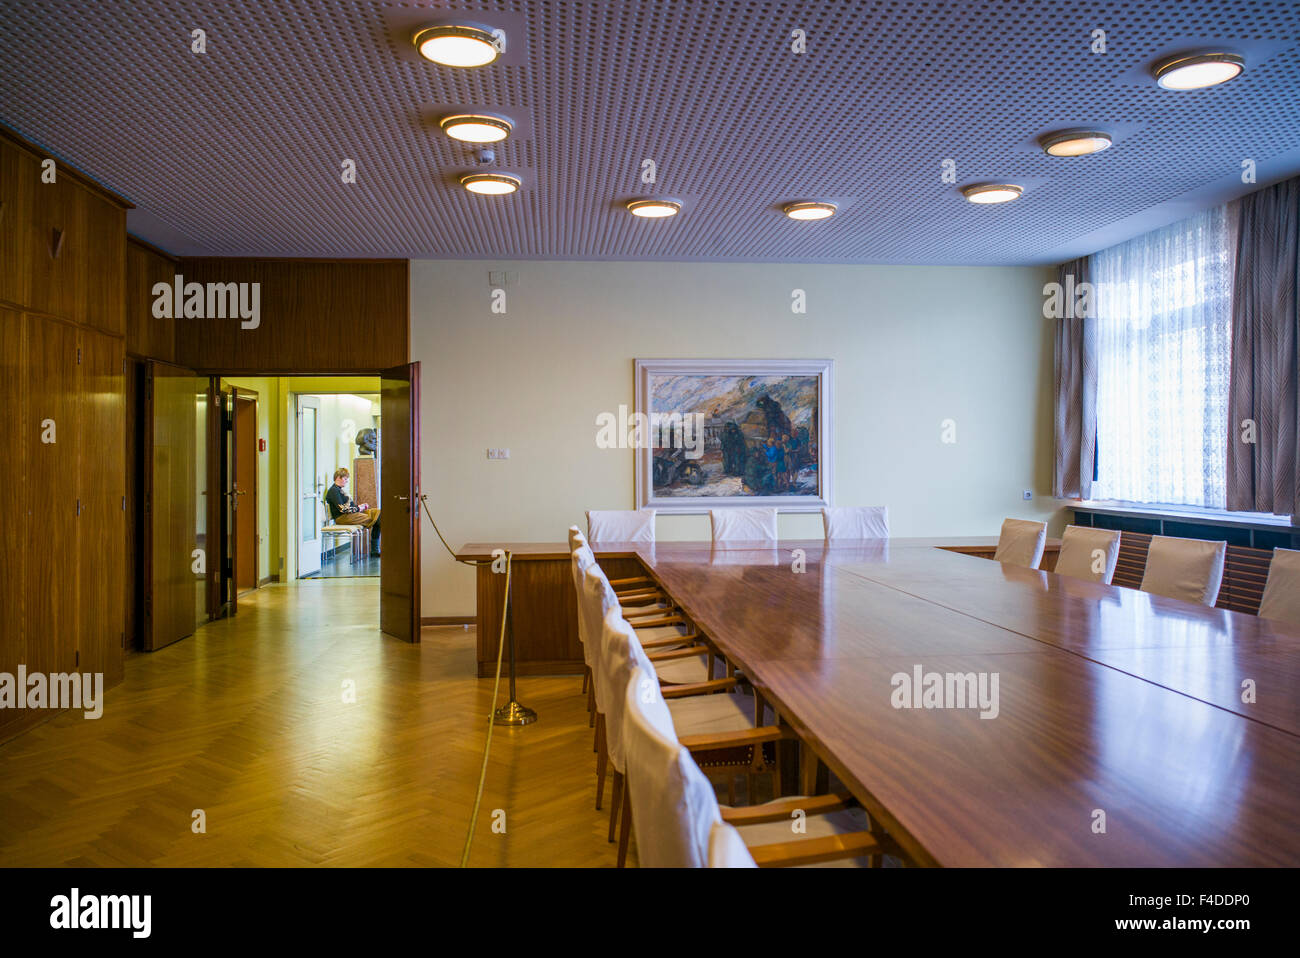 Germany, Berlin, Stasi Museum, DDR-era secret police museum in former secret police headquarters, conference room Stock Photo